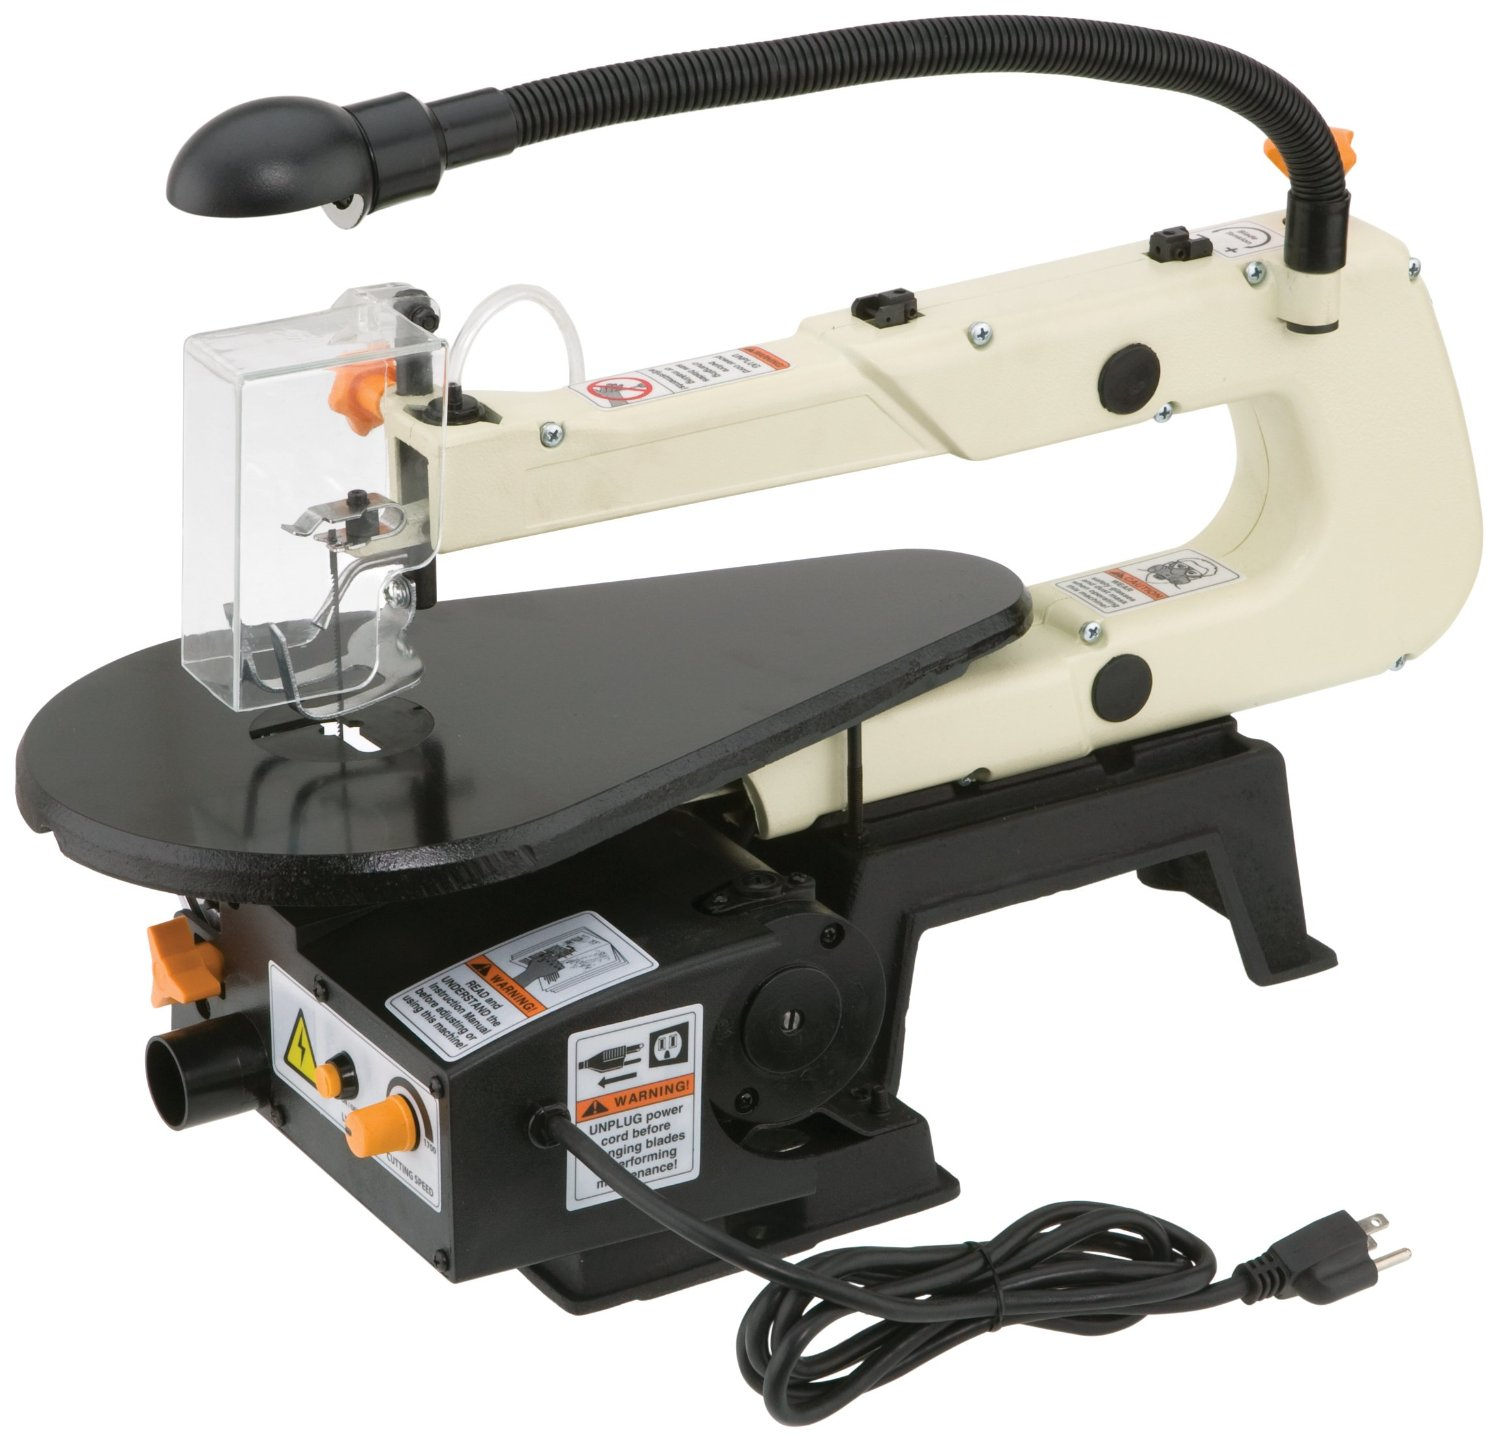 Brands archives scroll saw reviews shop fox w1713 16 inch variable speed scroll saw review keyboard keysfo